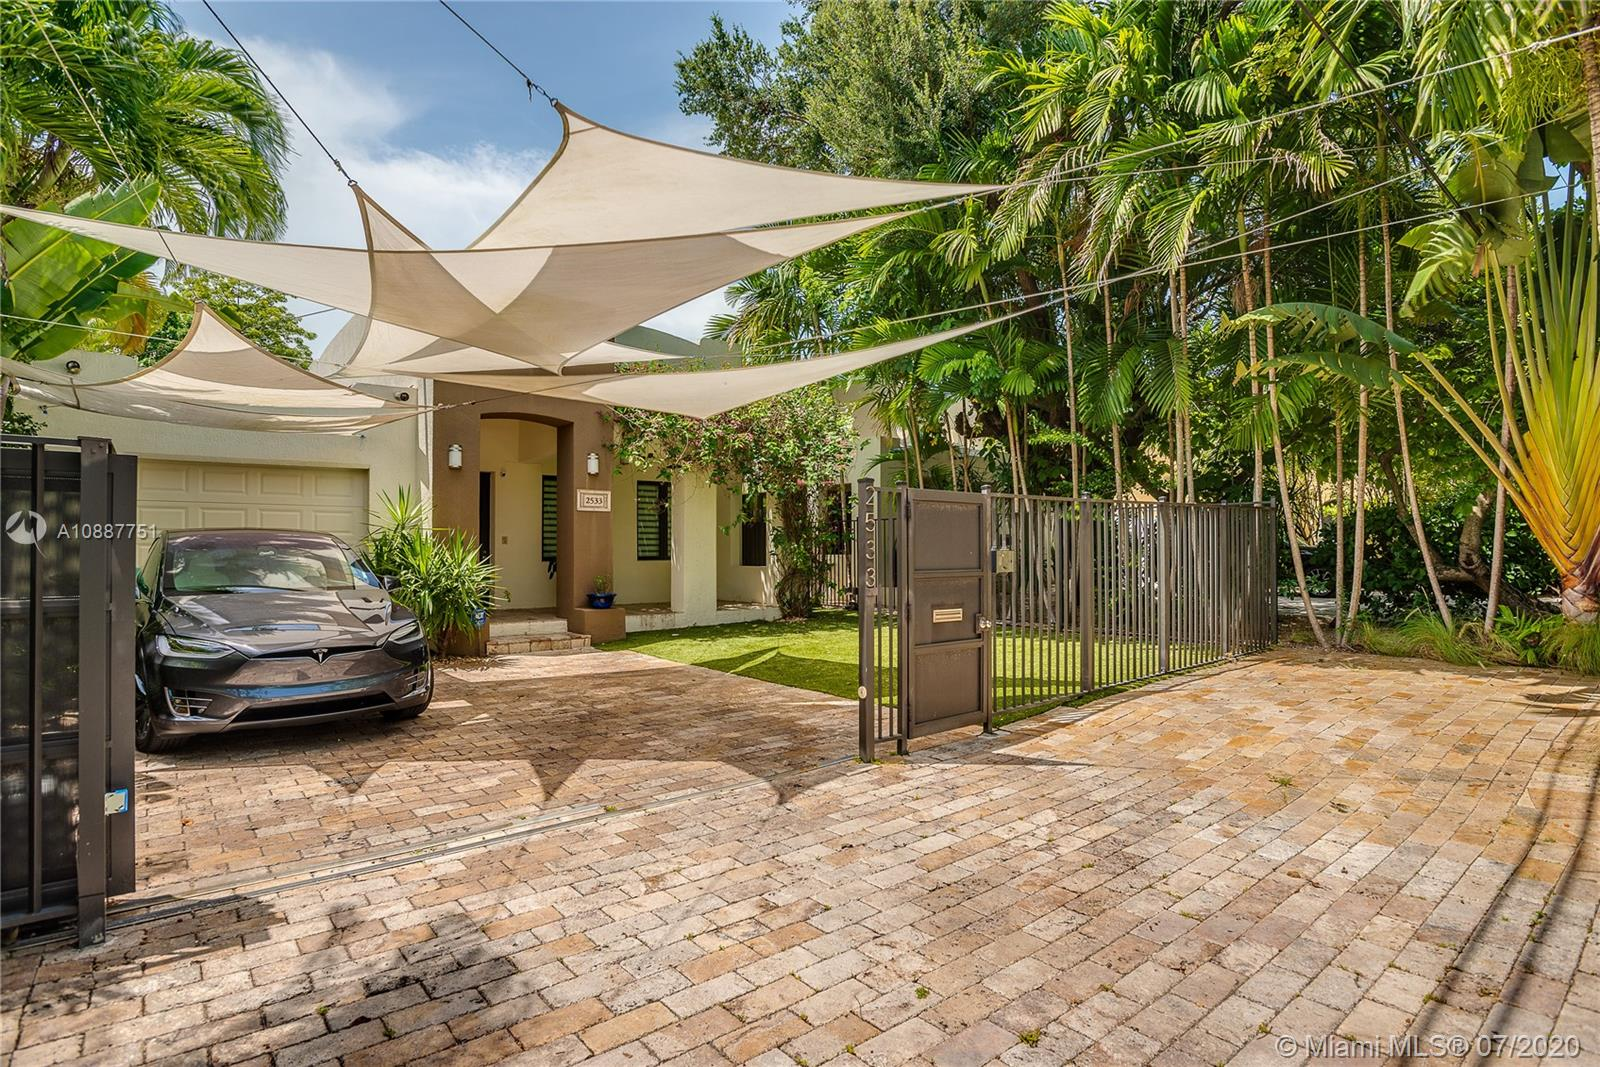 Private and secluded oasis in the heart of Coconut Grove. Open floor design; inviting ambiance and a practical professional chef's kitchen with gas stove for those who love to cook and entertain; large living room and wine cellar view from kitchen. Sonos stereo system throughout the house and patio with independent zones for comfort. Beautifully landscaped garden with lush vegetation, a pond with Koi fish, an intimate patio with plenty of seating for entertainment, pool table and a commercial gas BBQ.  Gated parking for two vehicles. The home also has 2 private entrances. Easy access to US1, walking distance to Metro Station, minutes from downtown, cocowalk, charming boutiques, galleries, gourmet restaurants, cafes and sailboats anchored at the Bay, several parks within walking distance.